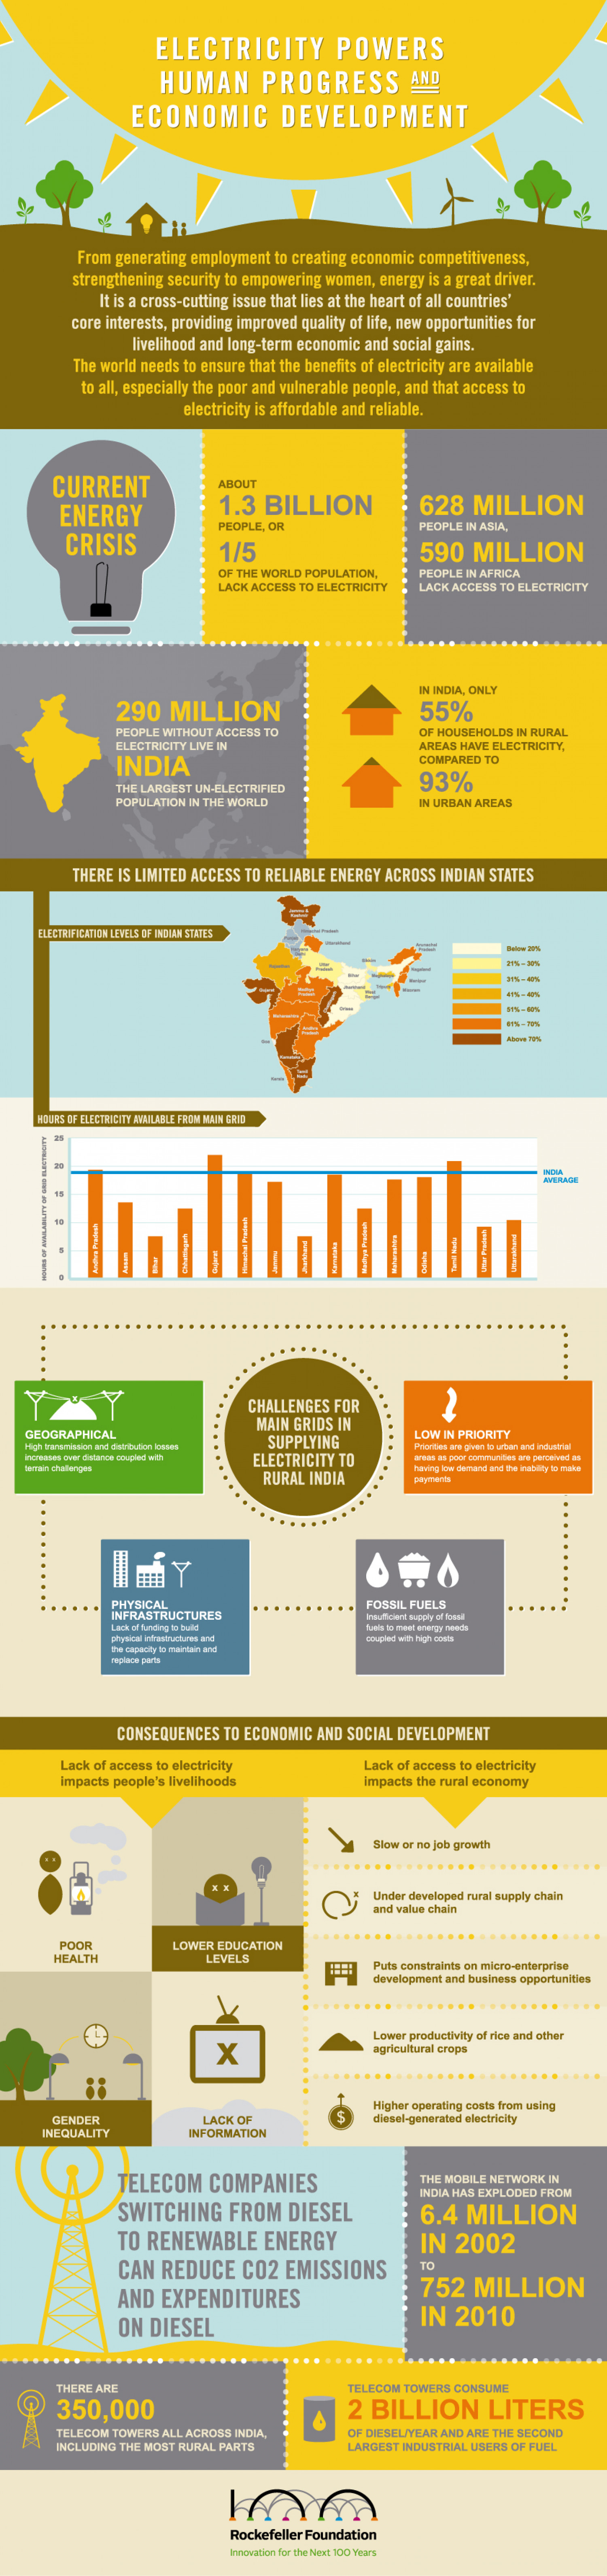 Smart Power in India Infographic